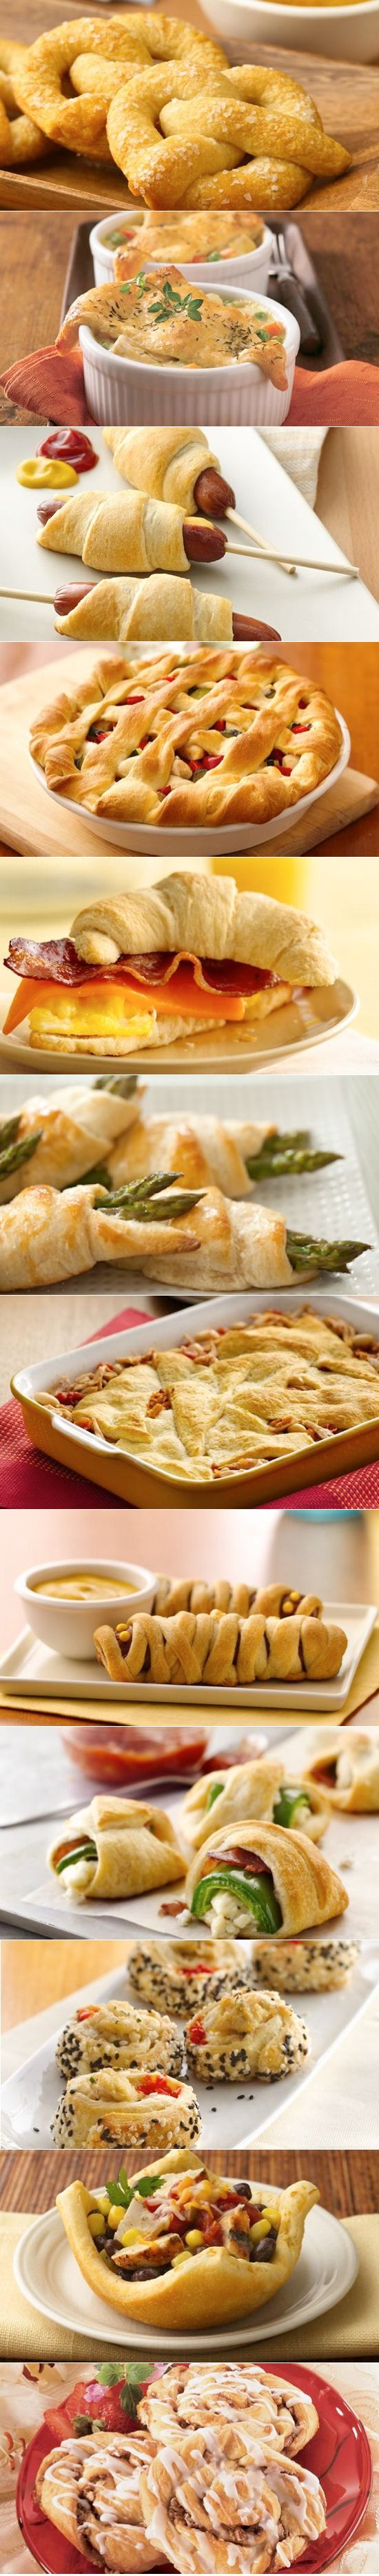 a list of yummy Crescent Roll Recipes, perfect for any party!